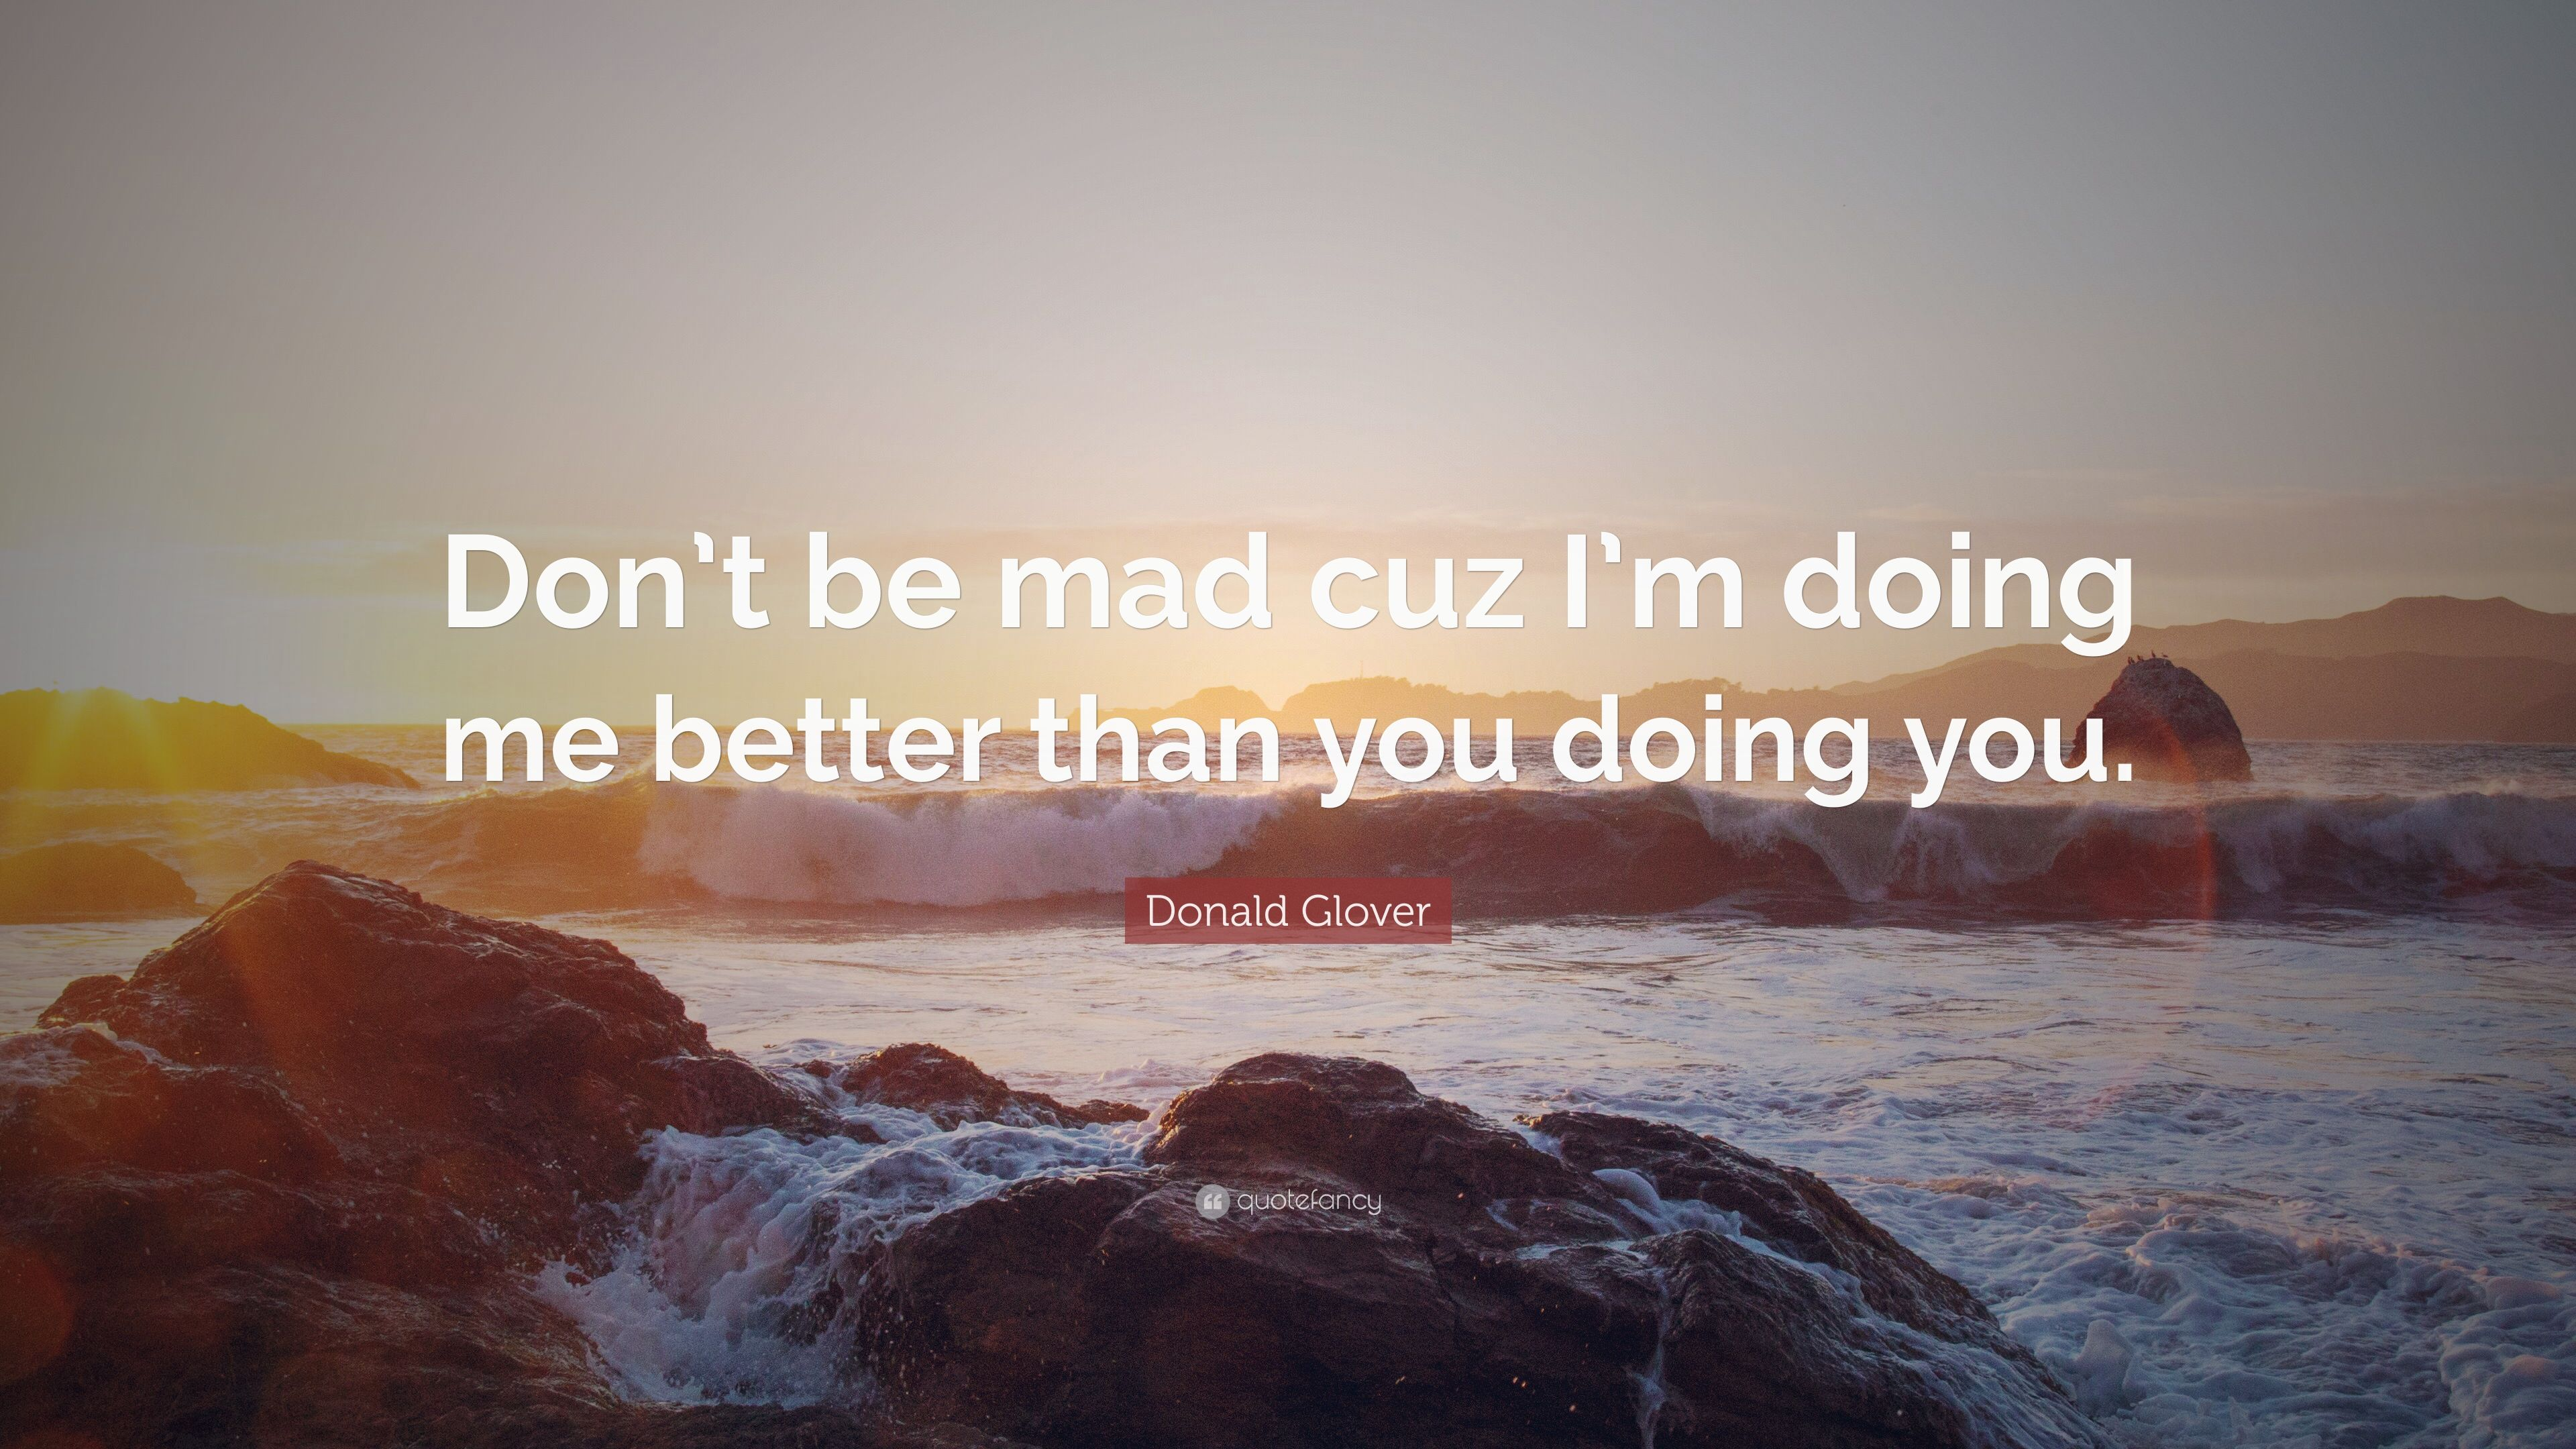 Donald Glover Quote: U201cDonu0027t Be Mad Cuz Iu0027m Doing Me